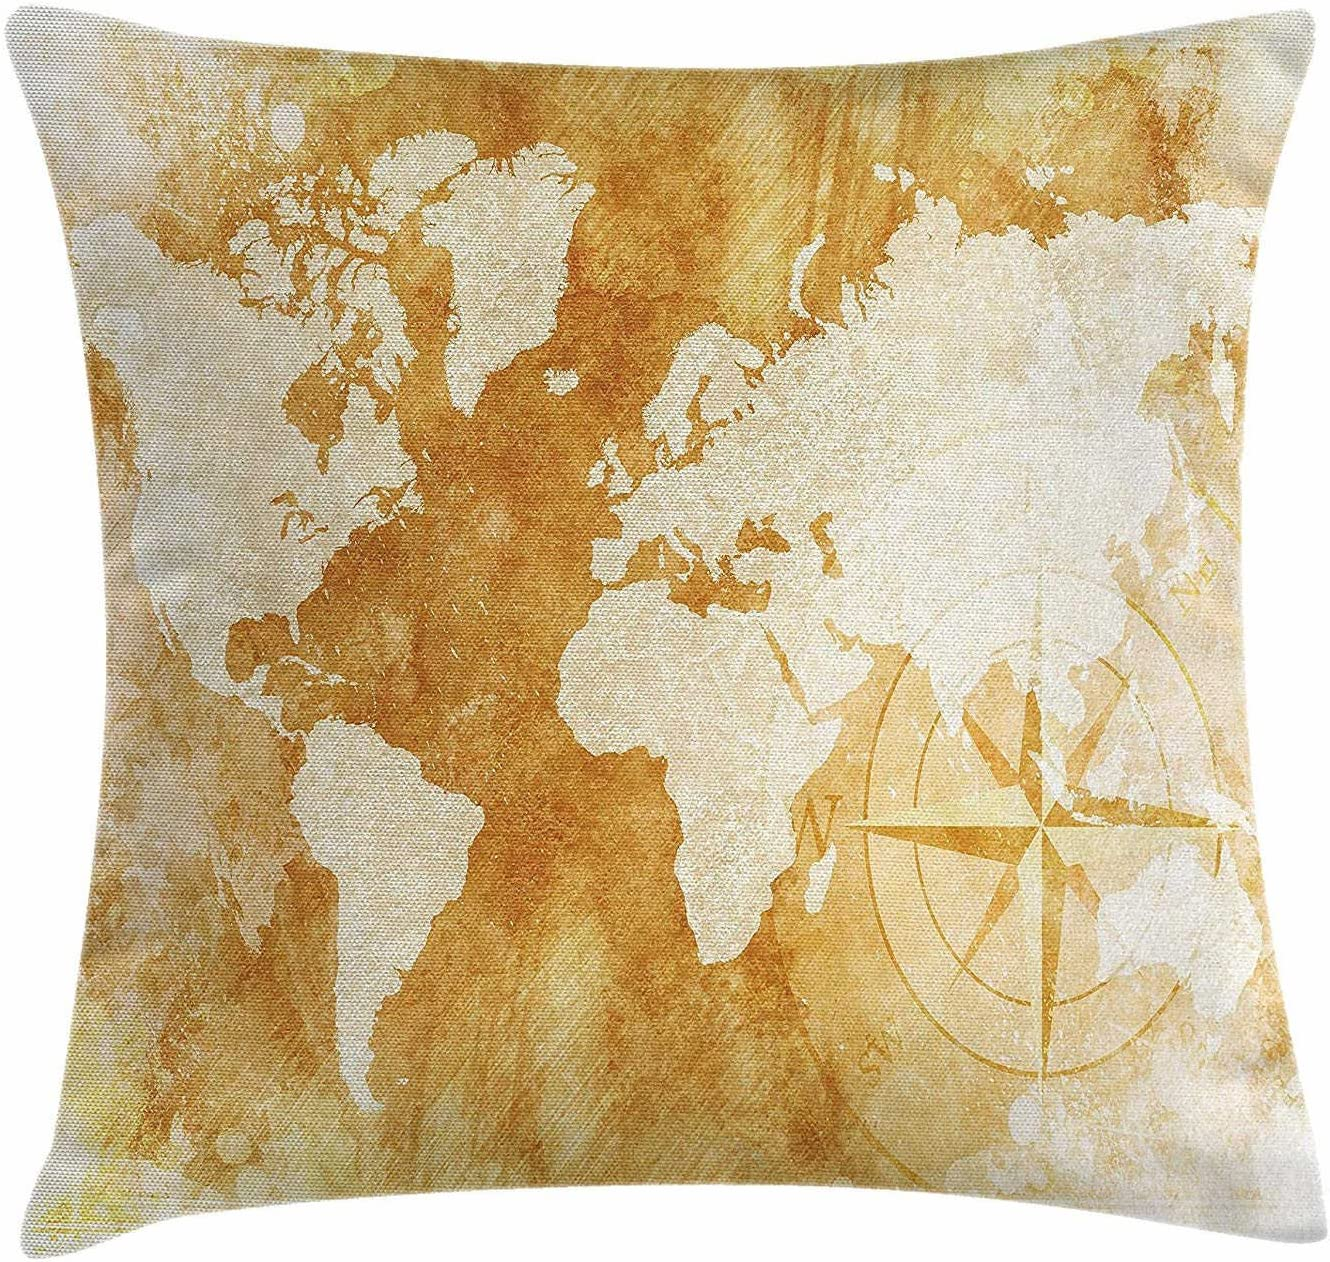 SPXUBZ Compass Old-Fashioned World Map Design In Retro Distressed Colors Continents Earth Pillow Cover Decorative Home Decor Nice Gift Indoor Pillowcase Size: 20x20 Inch(Two Sides)